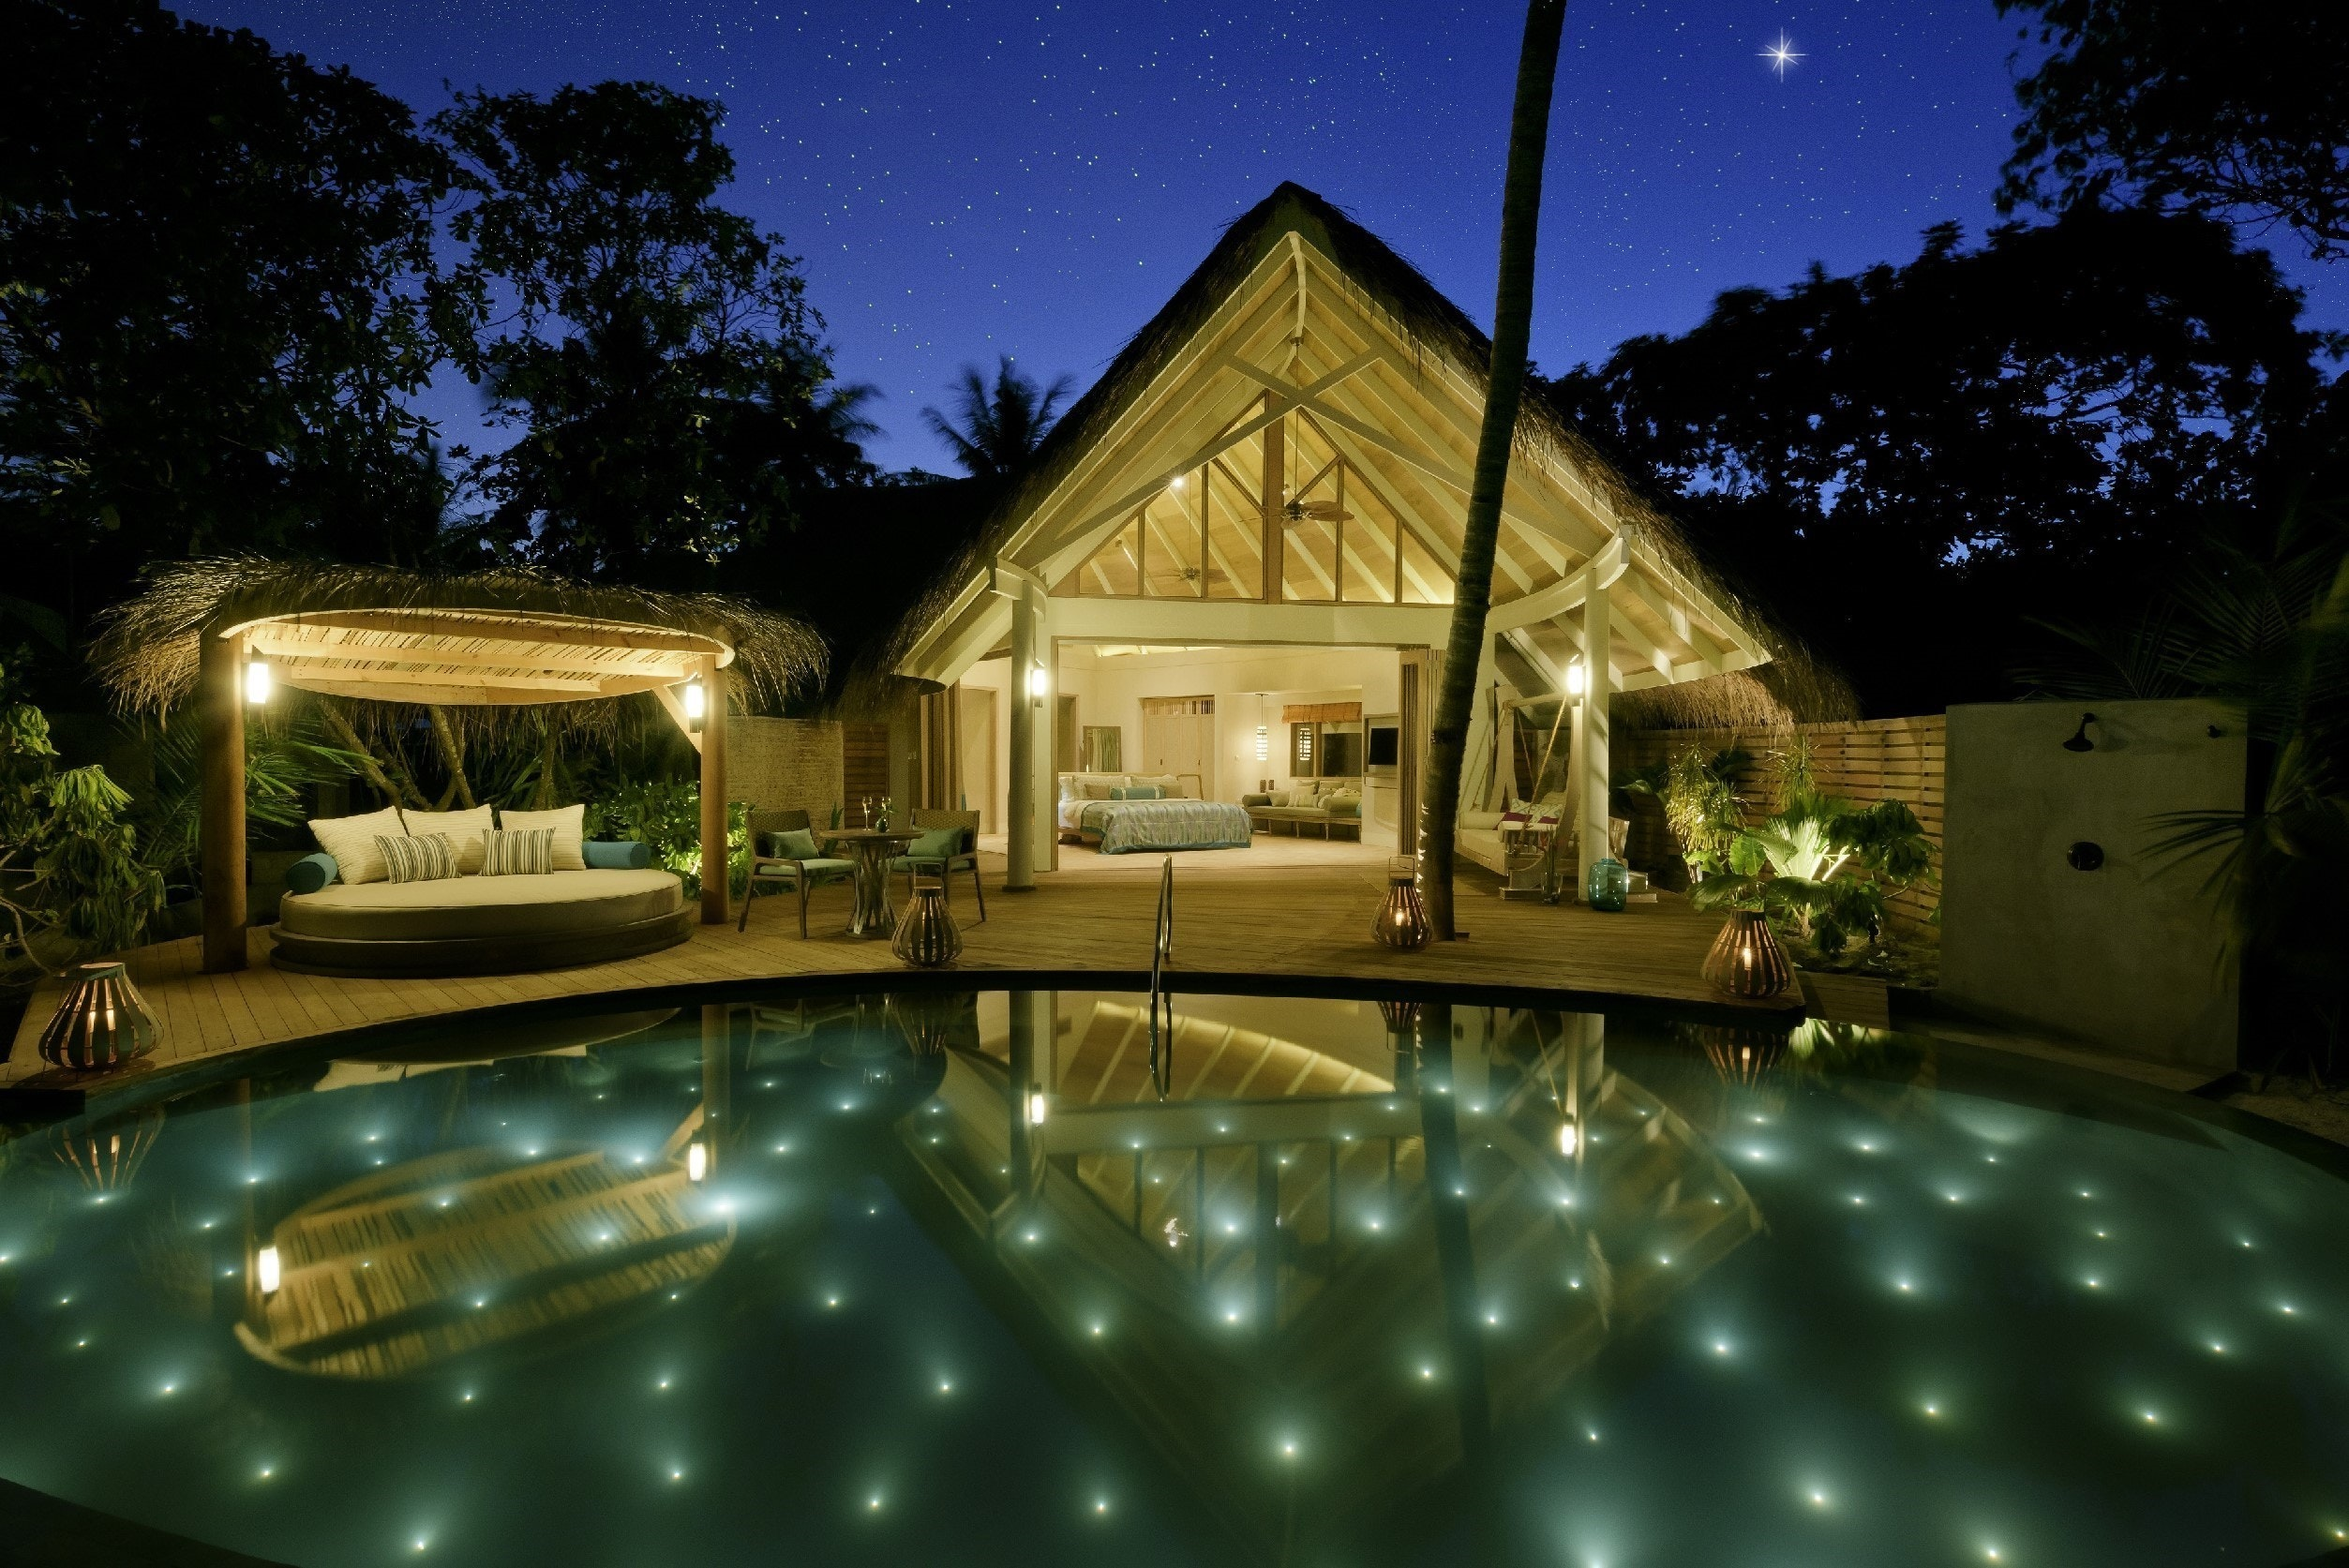 At Milaidhoo Resort, you'll recieve an actual star